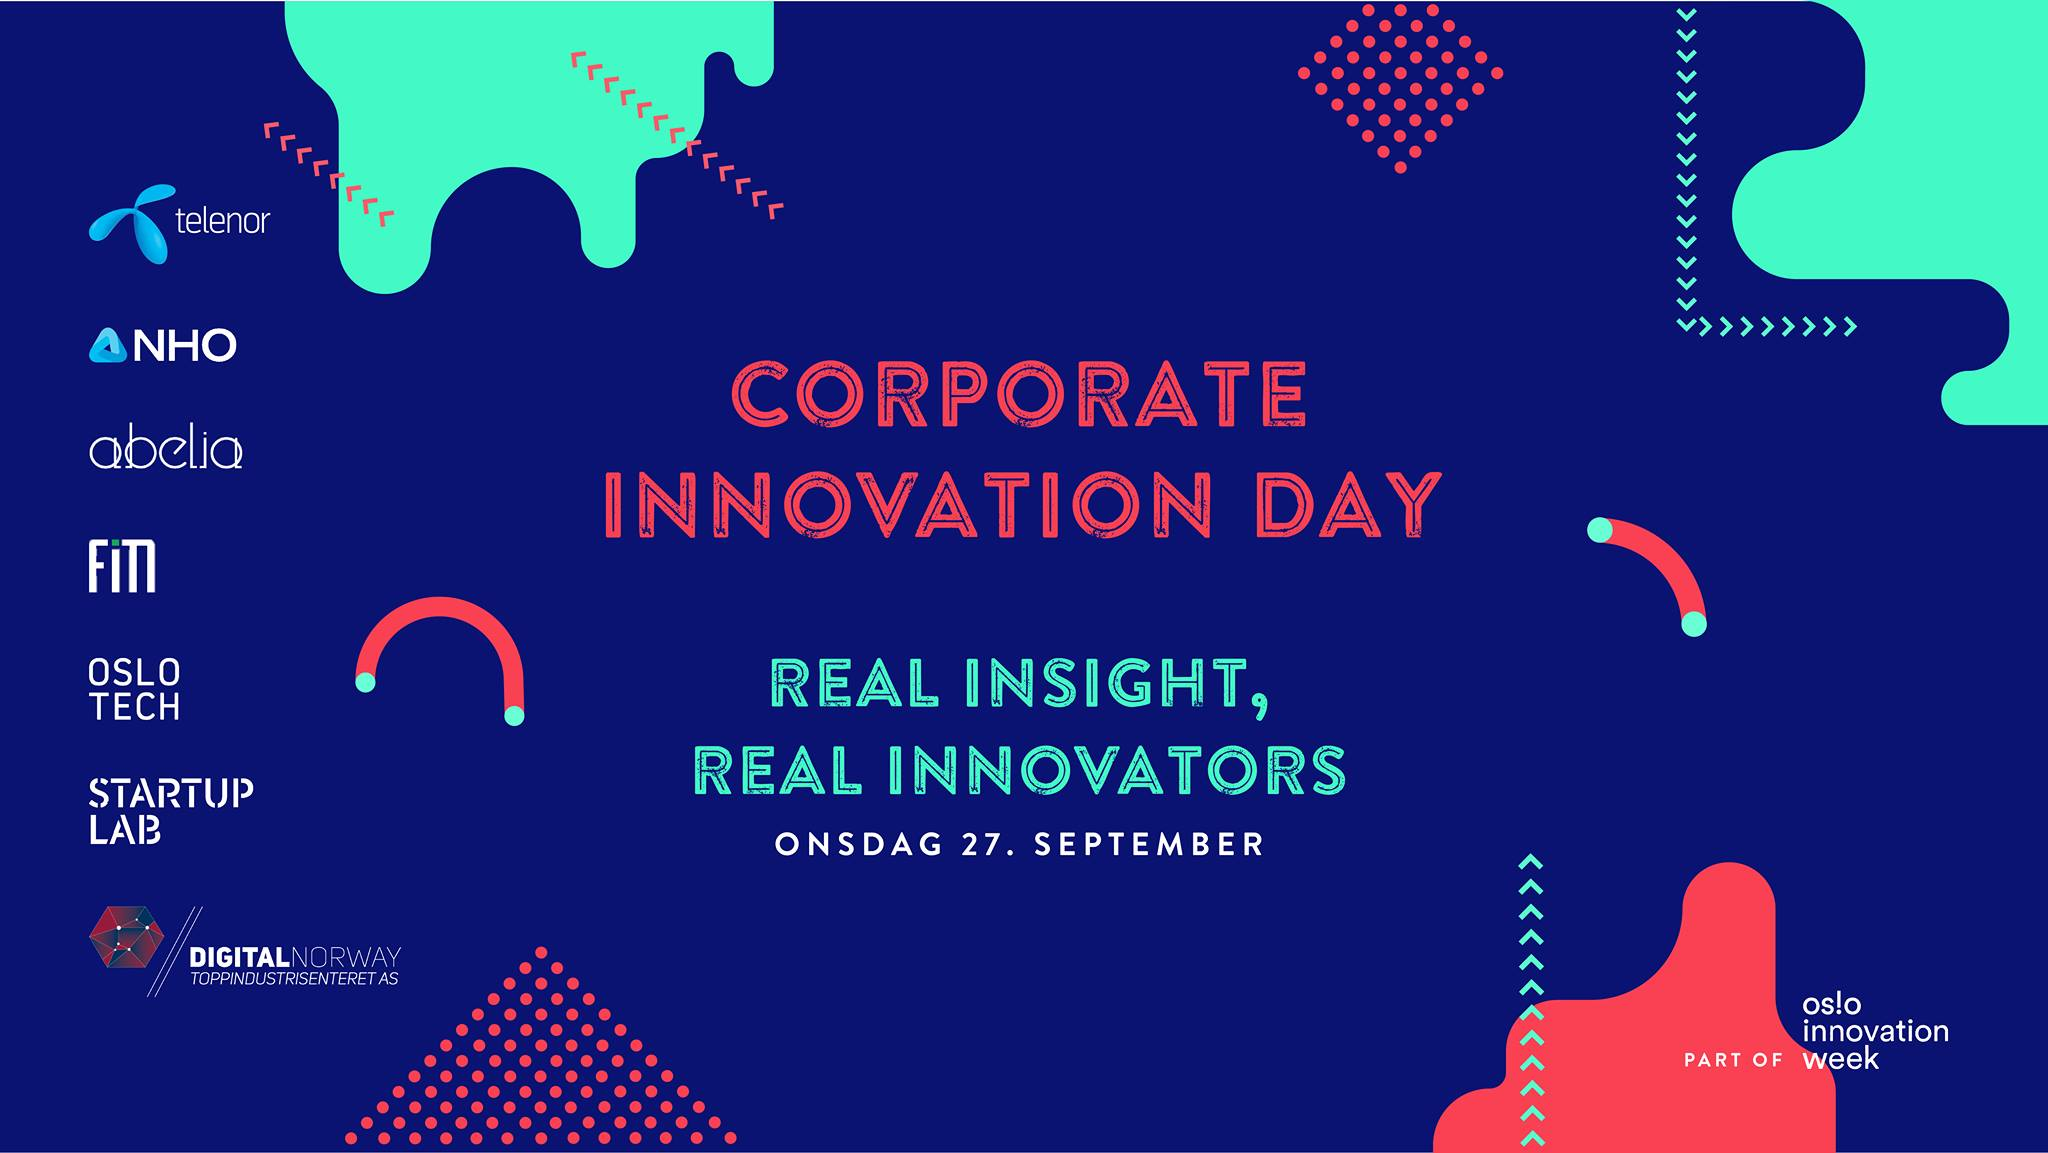 Corporate Innovation Day 2018 – real insight, real innovators